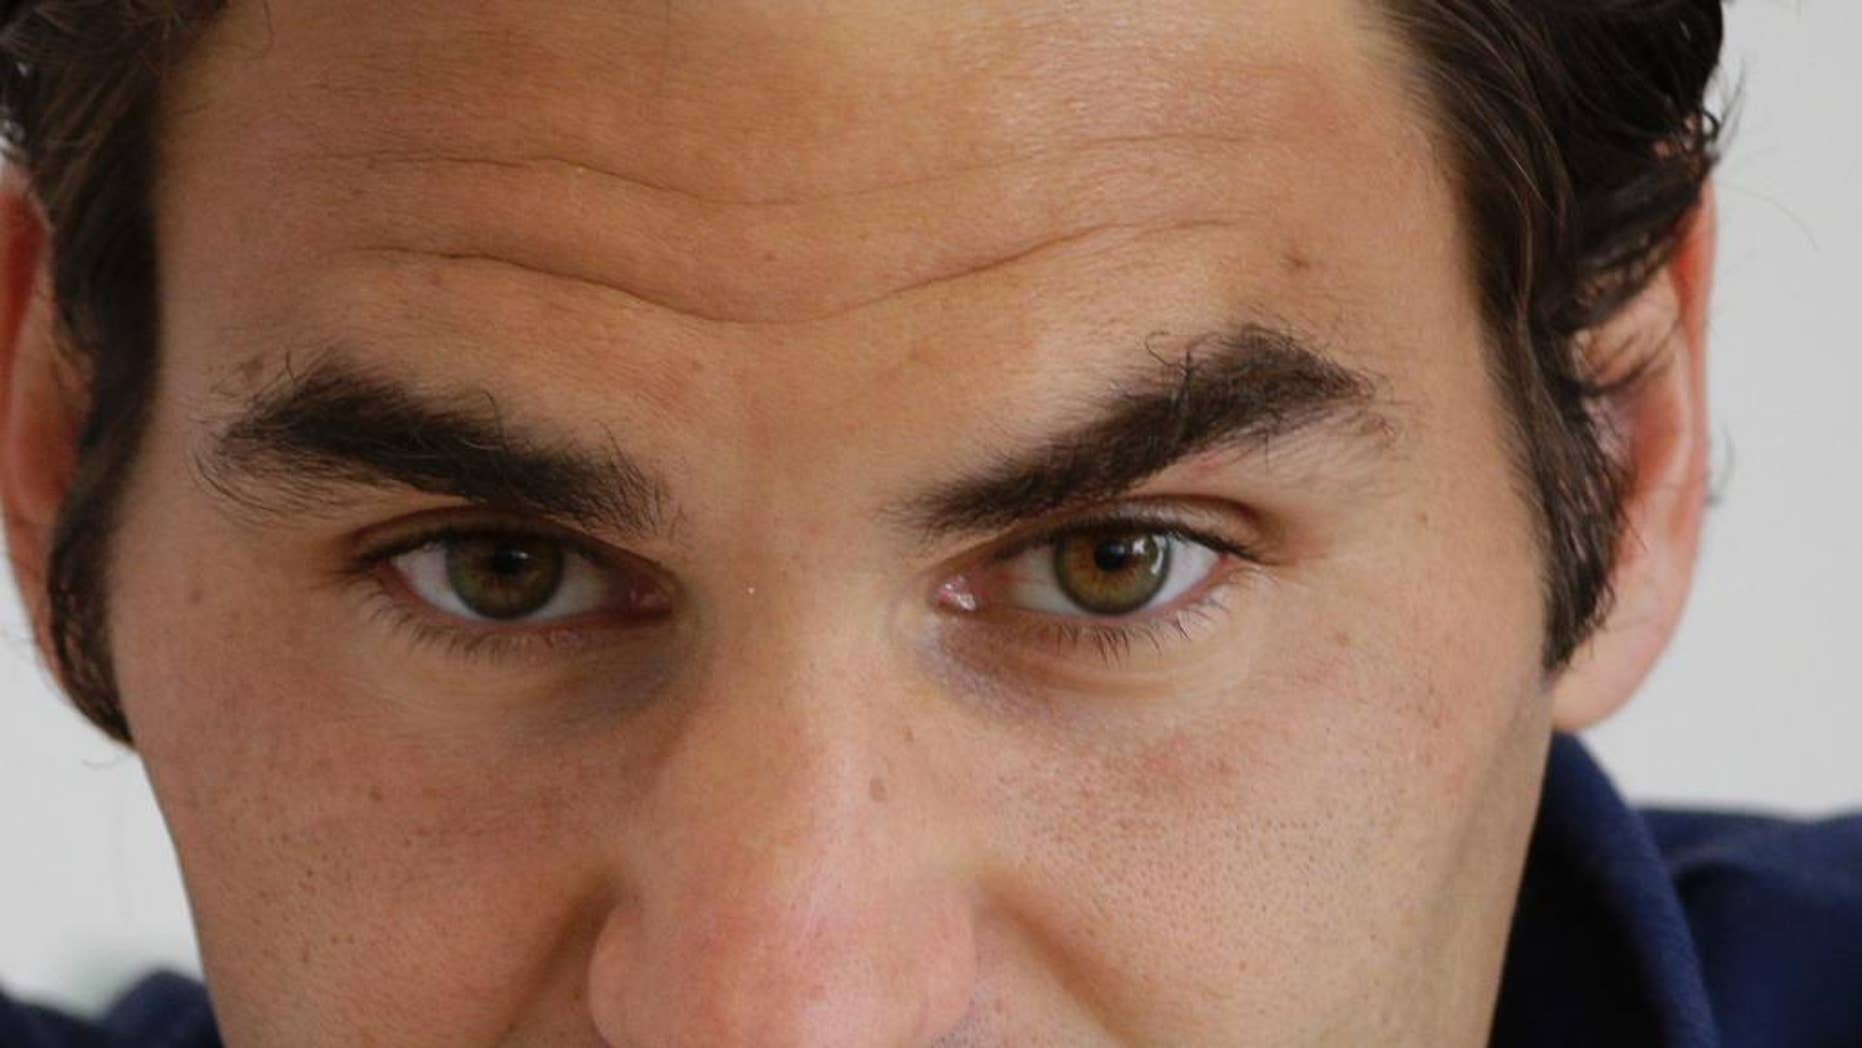 Roger Federer of Switzerland listens to reporters' questions during a press conference at the Italian Open tennis tournament, in Rome, Tuesday, May 13, 2014. (AP Photo/Alessandra Tarantino)